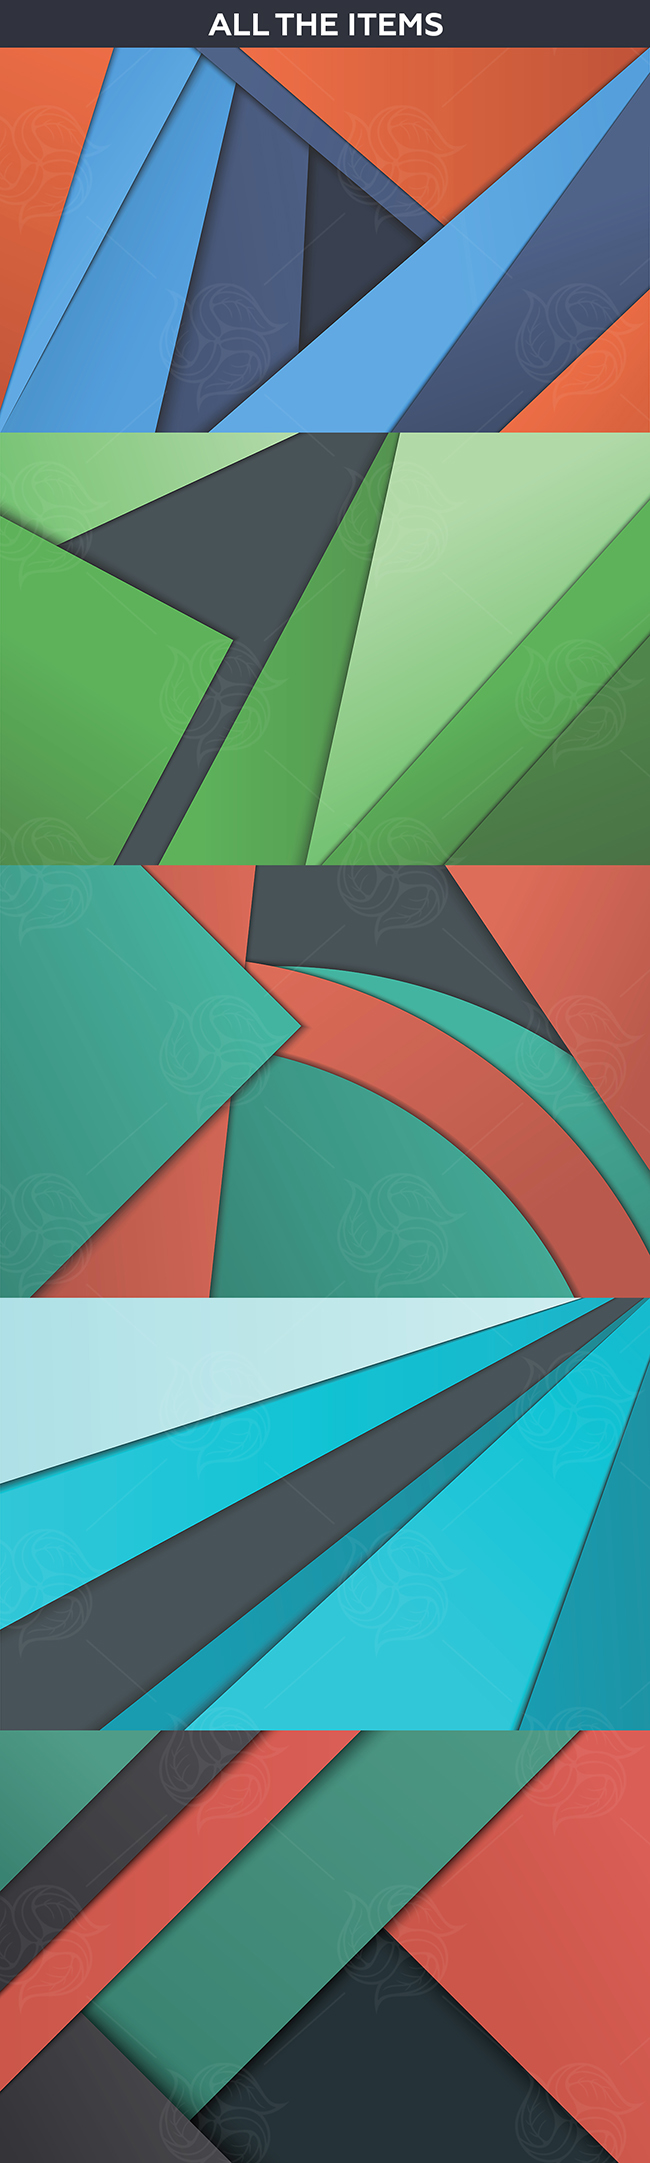 Unusual modern material design vector backgrounds